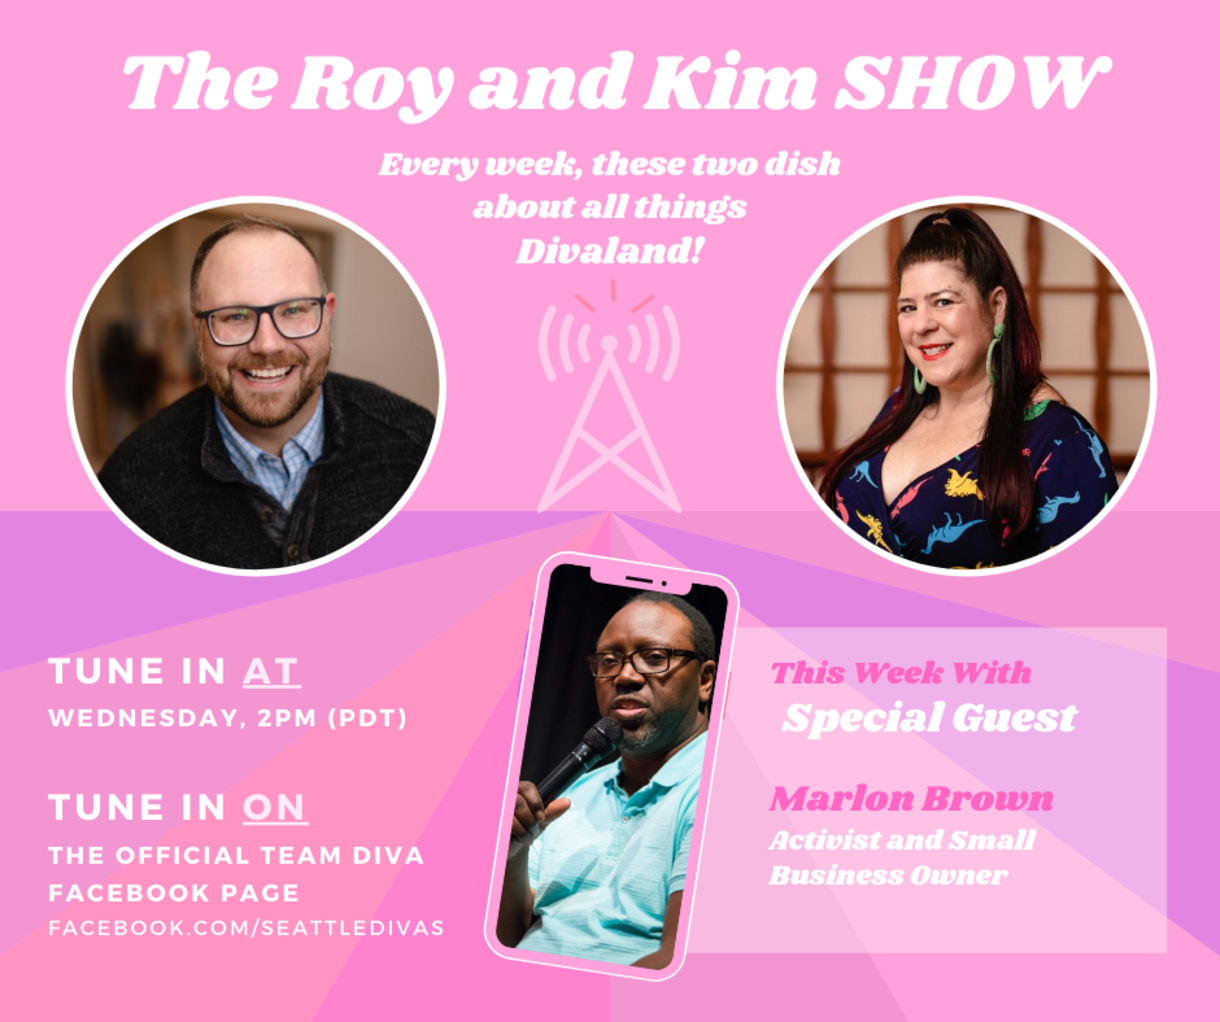 Roy and Kim Show with Marlon Brown